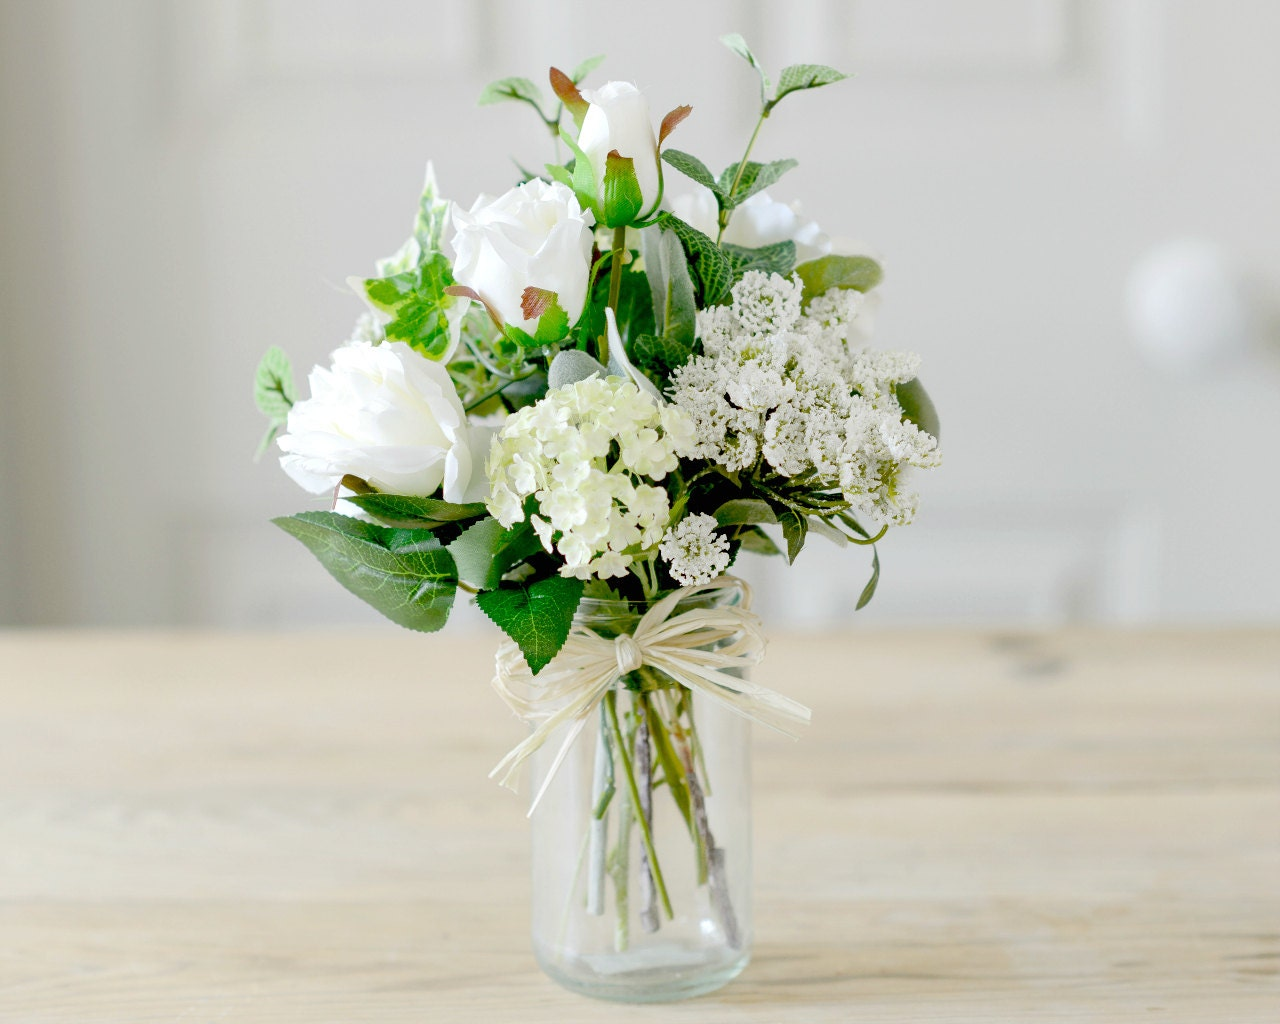 Artificial Flowers White Rose Blooms With Vintage Style Vase  Silk White Roses  Flower Posy Faux Home Or Wedding Flower Arrangement